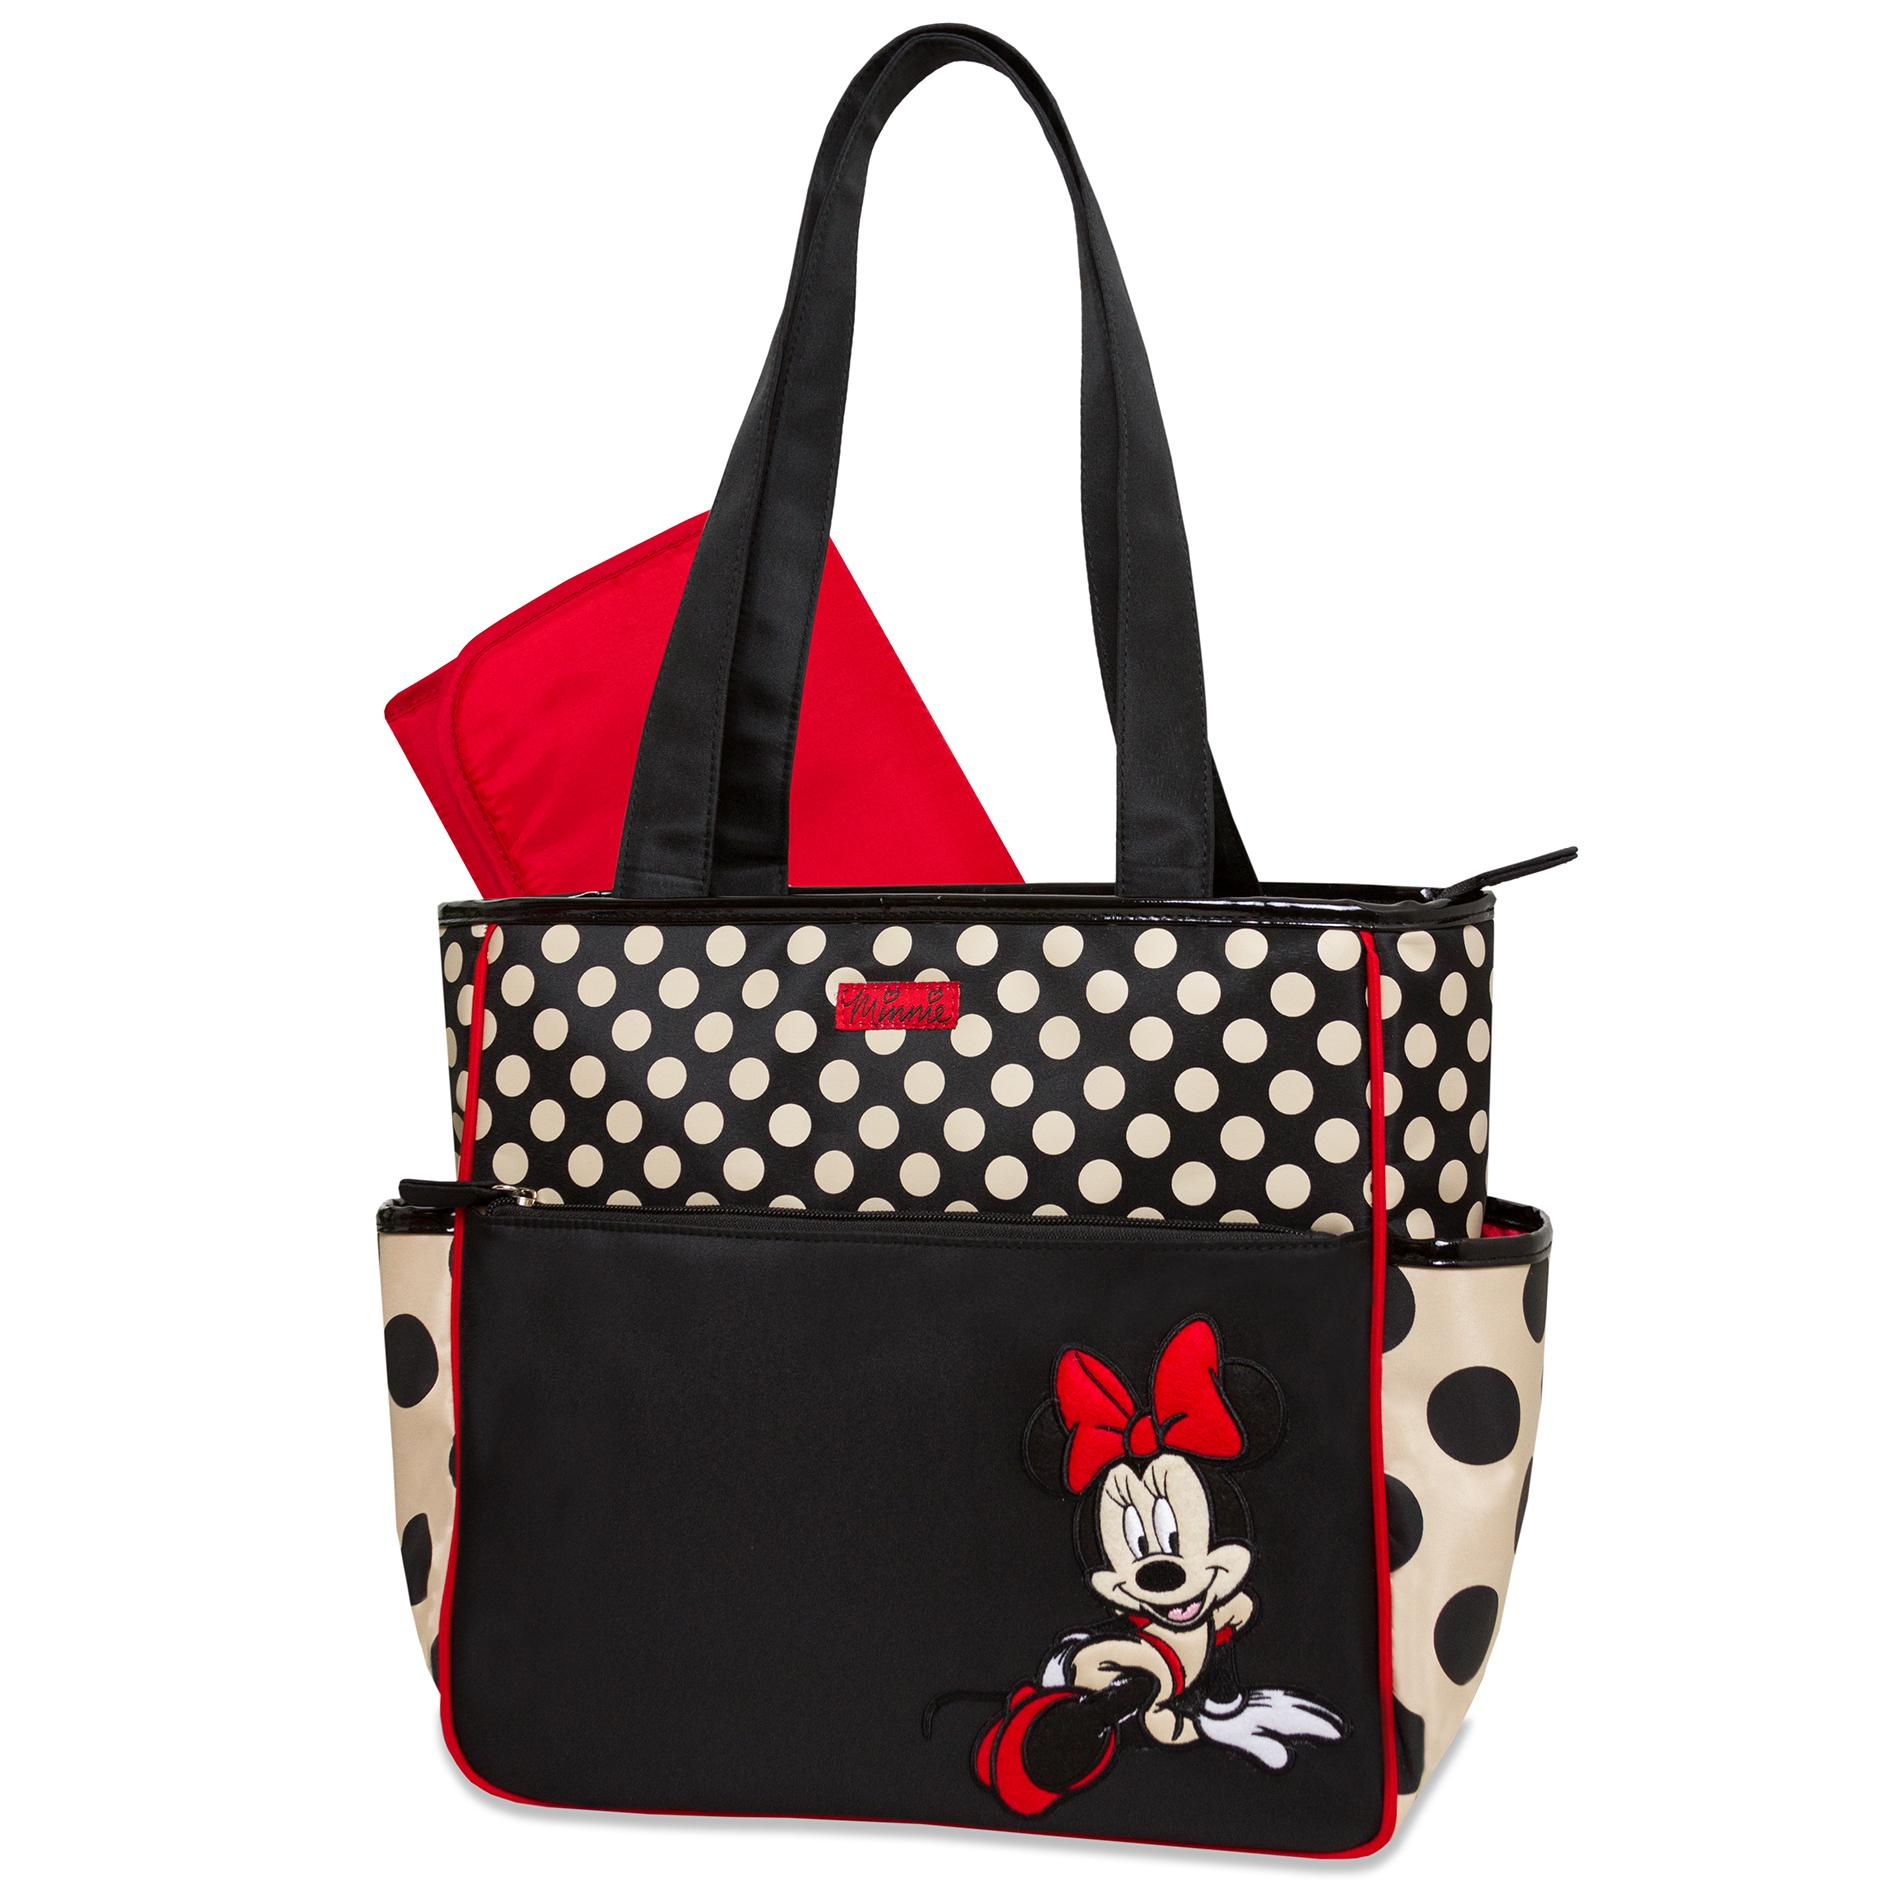 Disney Minnie Mouse Diaper Bag & Changing Pad - Polka Dot,  Multi-Colored